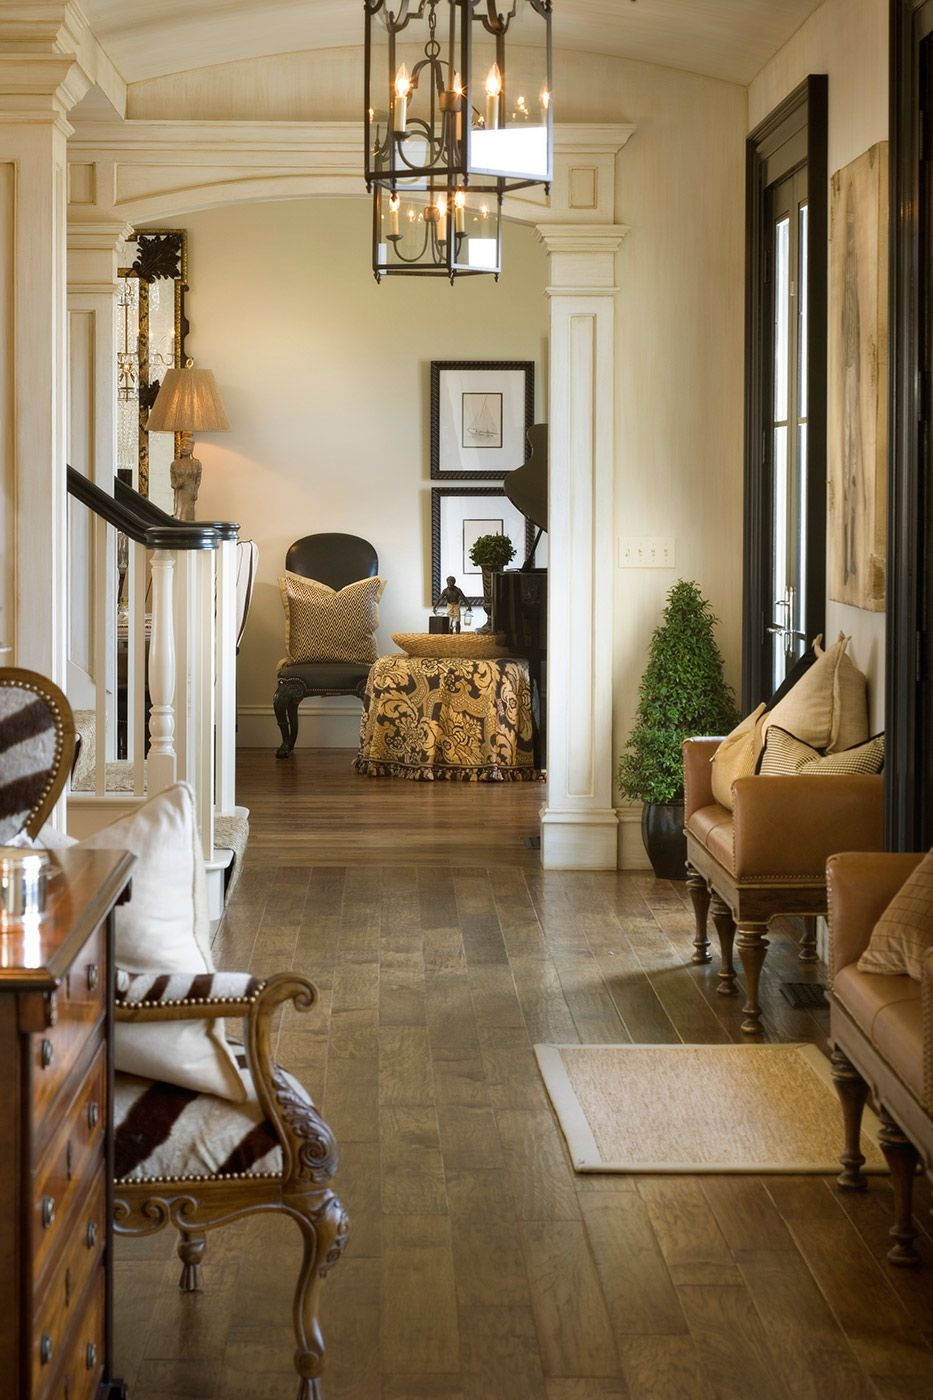 Joy Tribout Interior Design | First Home | Pinterest | Interiors ...